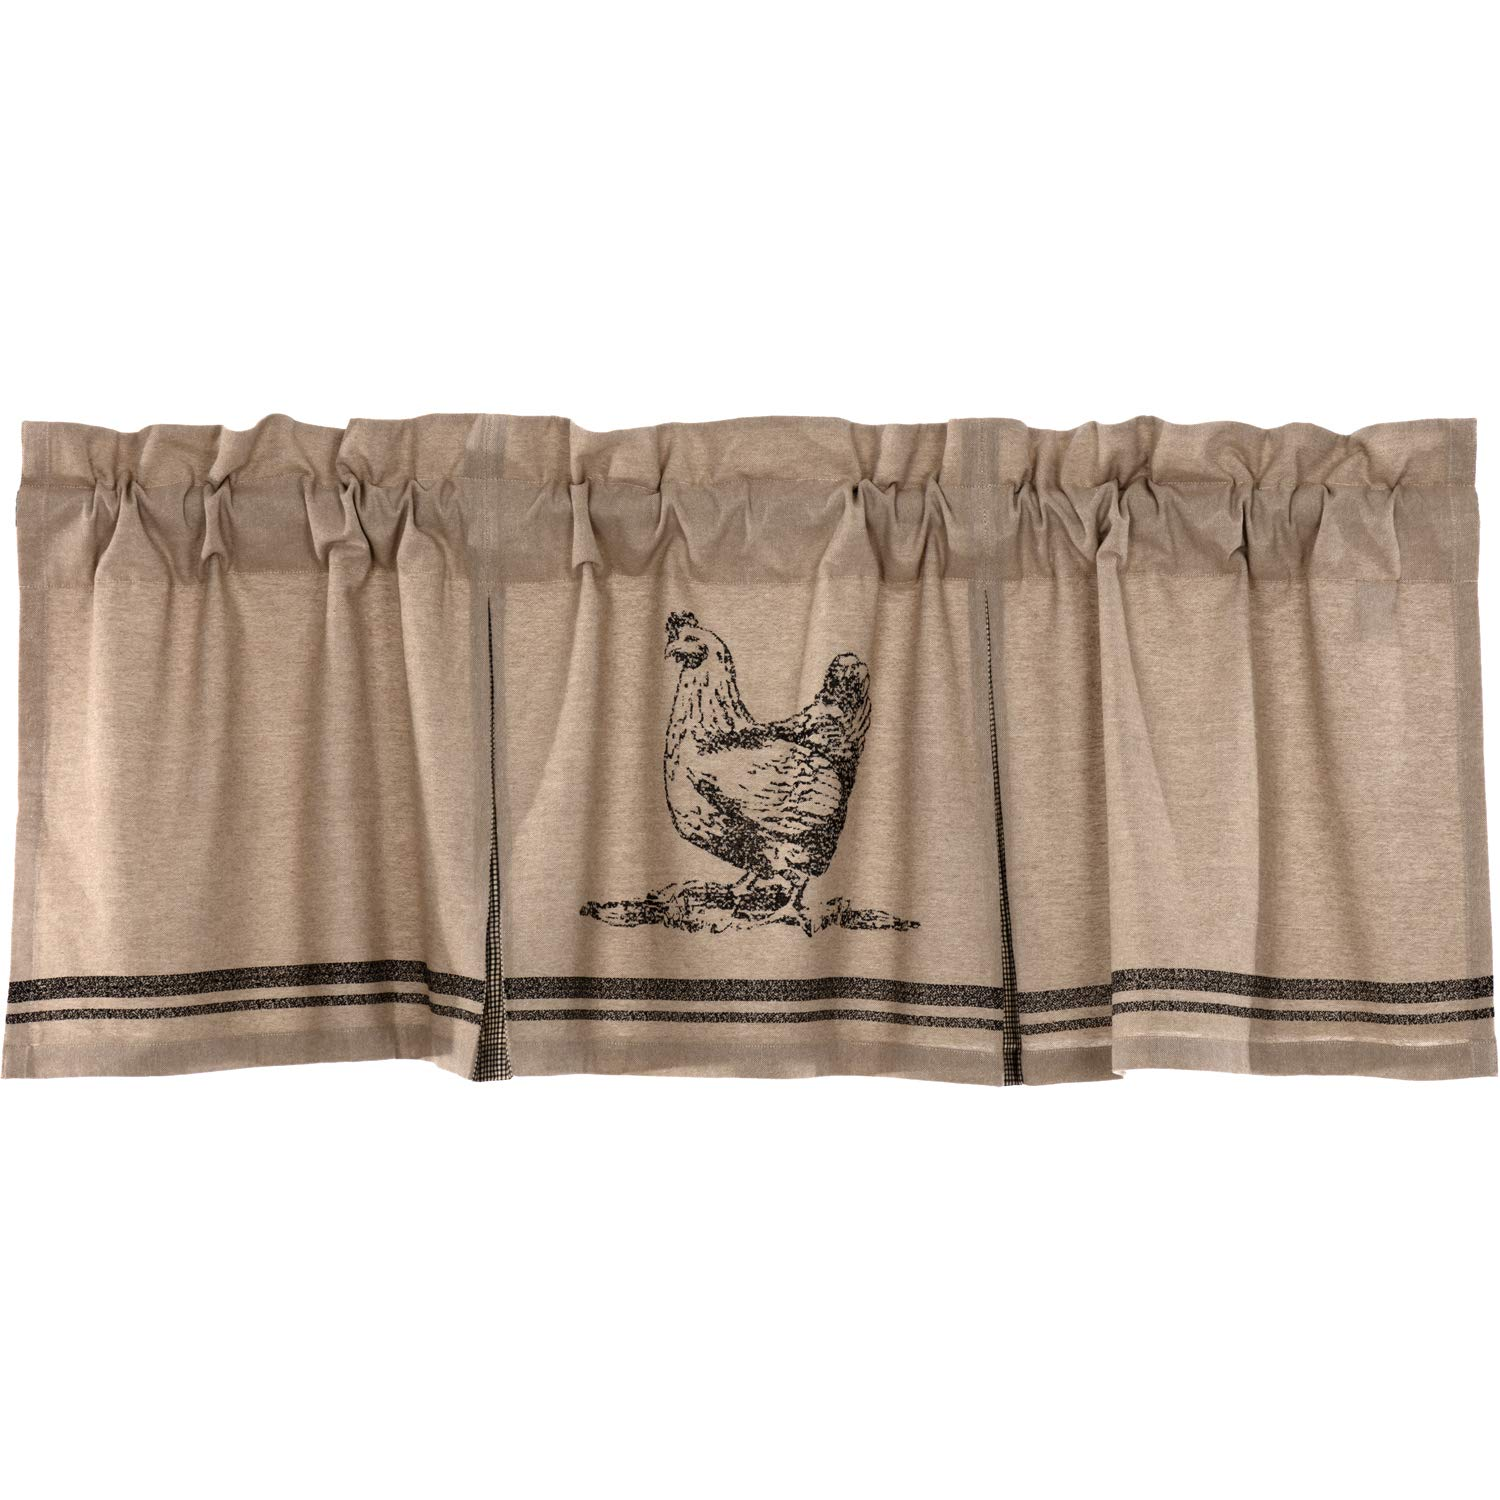 VHC Brands Farmhouse Kitchen Curtains Sawyer Mill Chicken Rod Pocket Cotton Hanging Loops Stenciled Chambray Nature Print 20x60 Valance Charcoal Khaki Tan